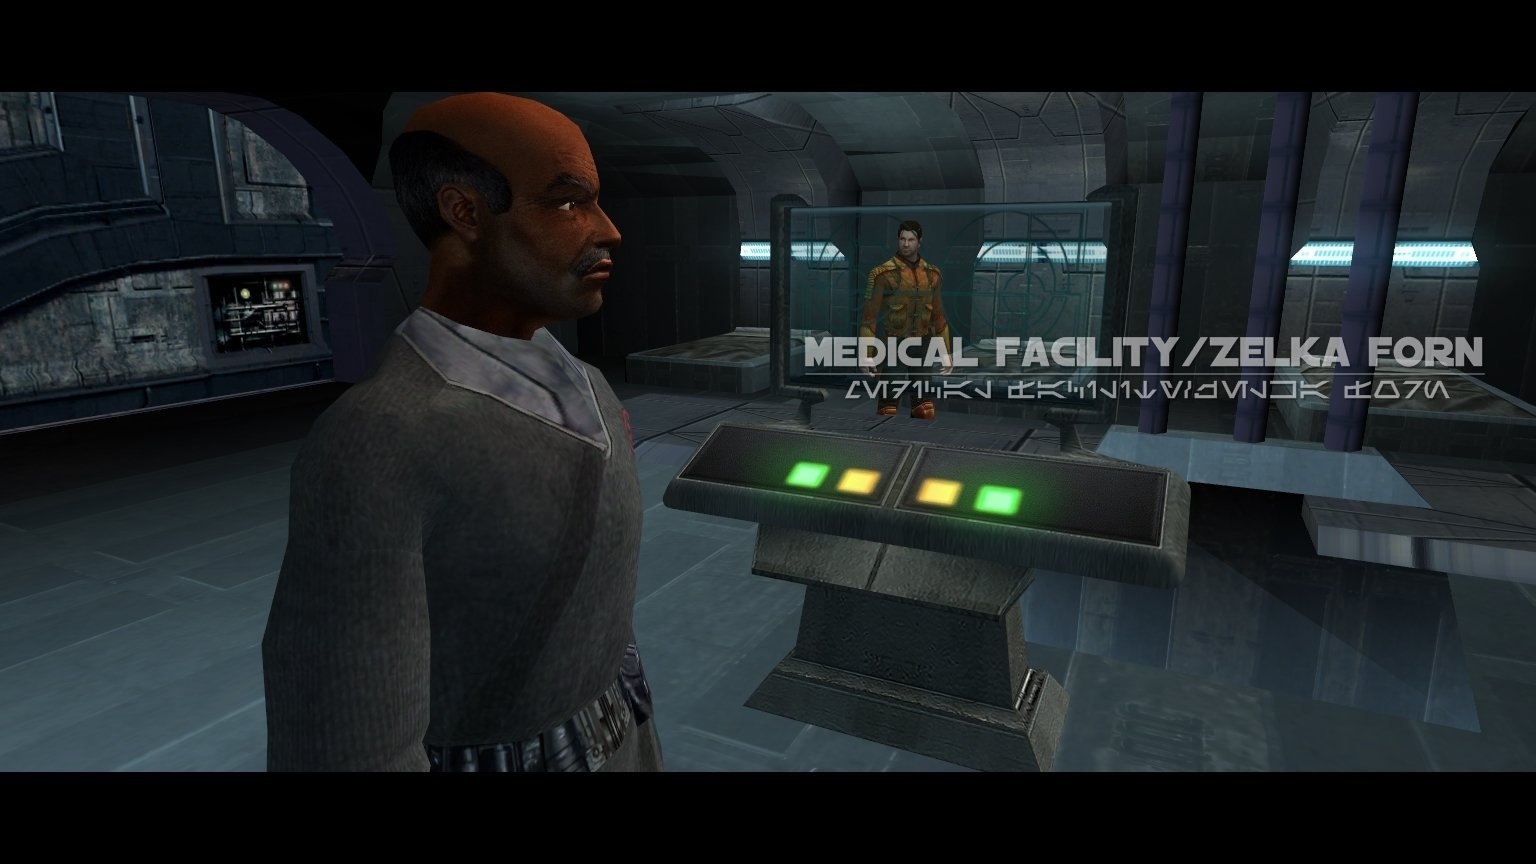 The Upper City: Medical Facility